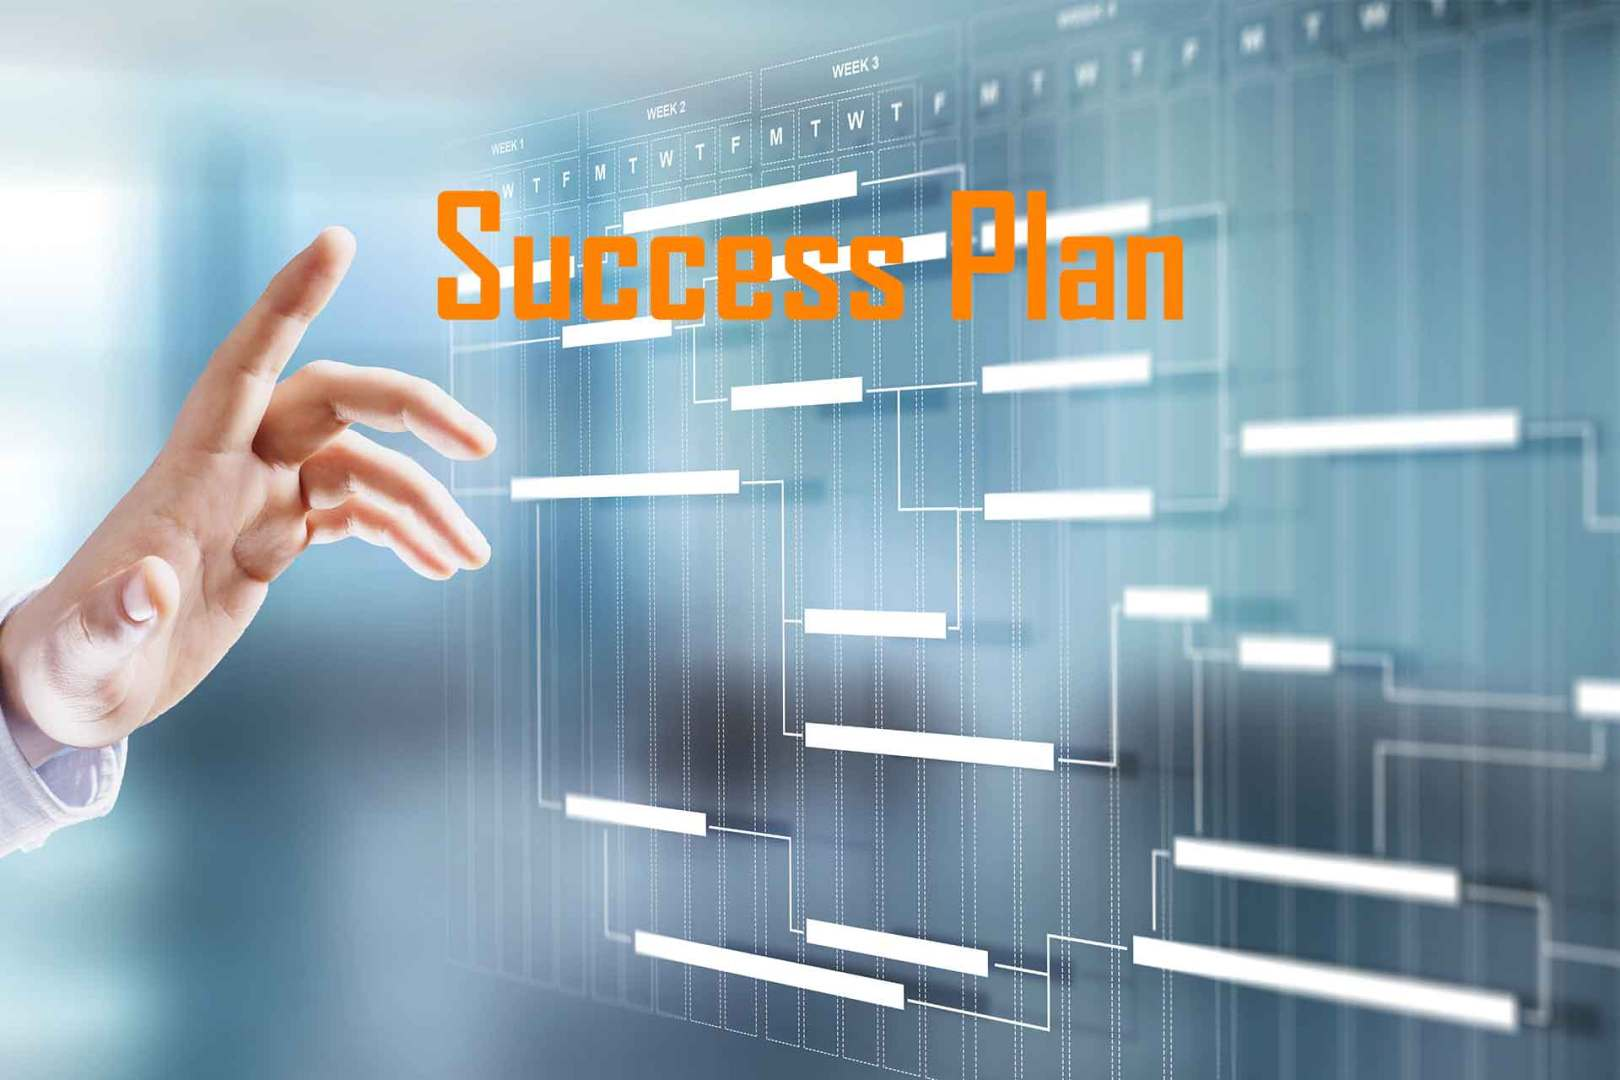 Plan to achieve CompTIA expertise and Certification.